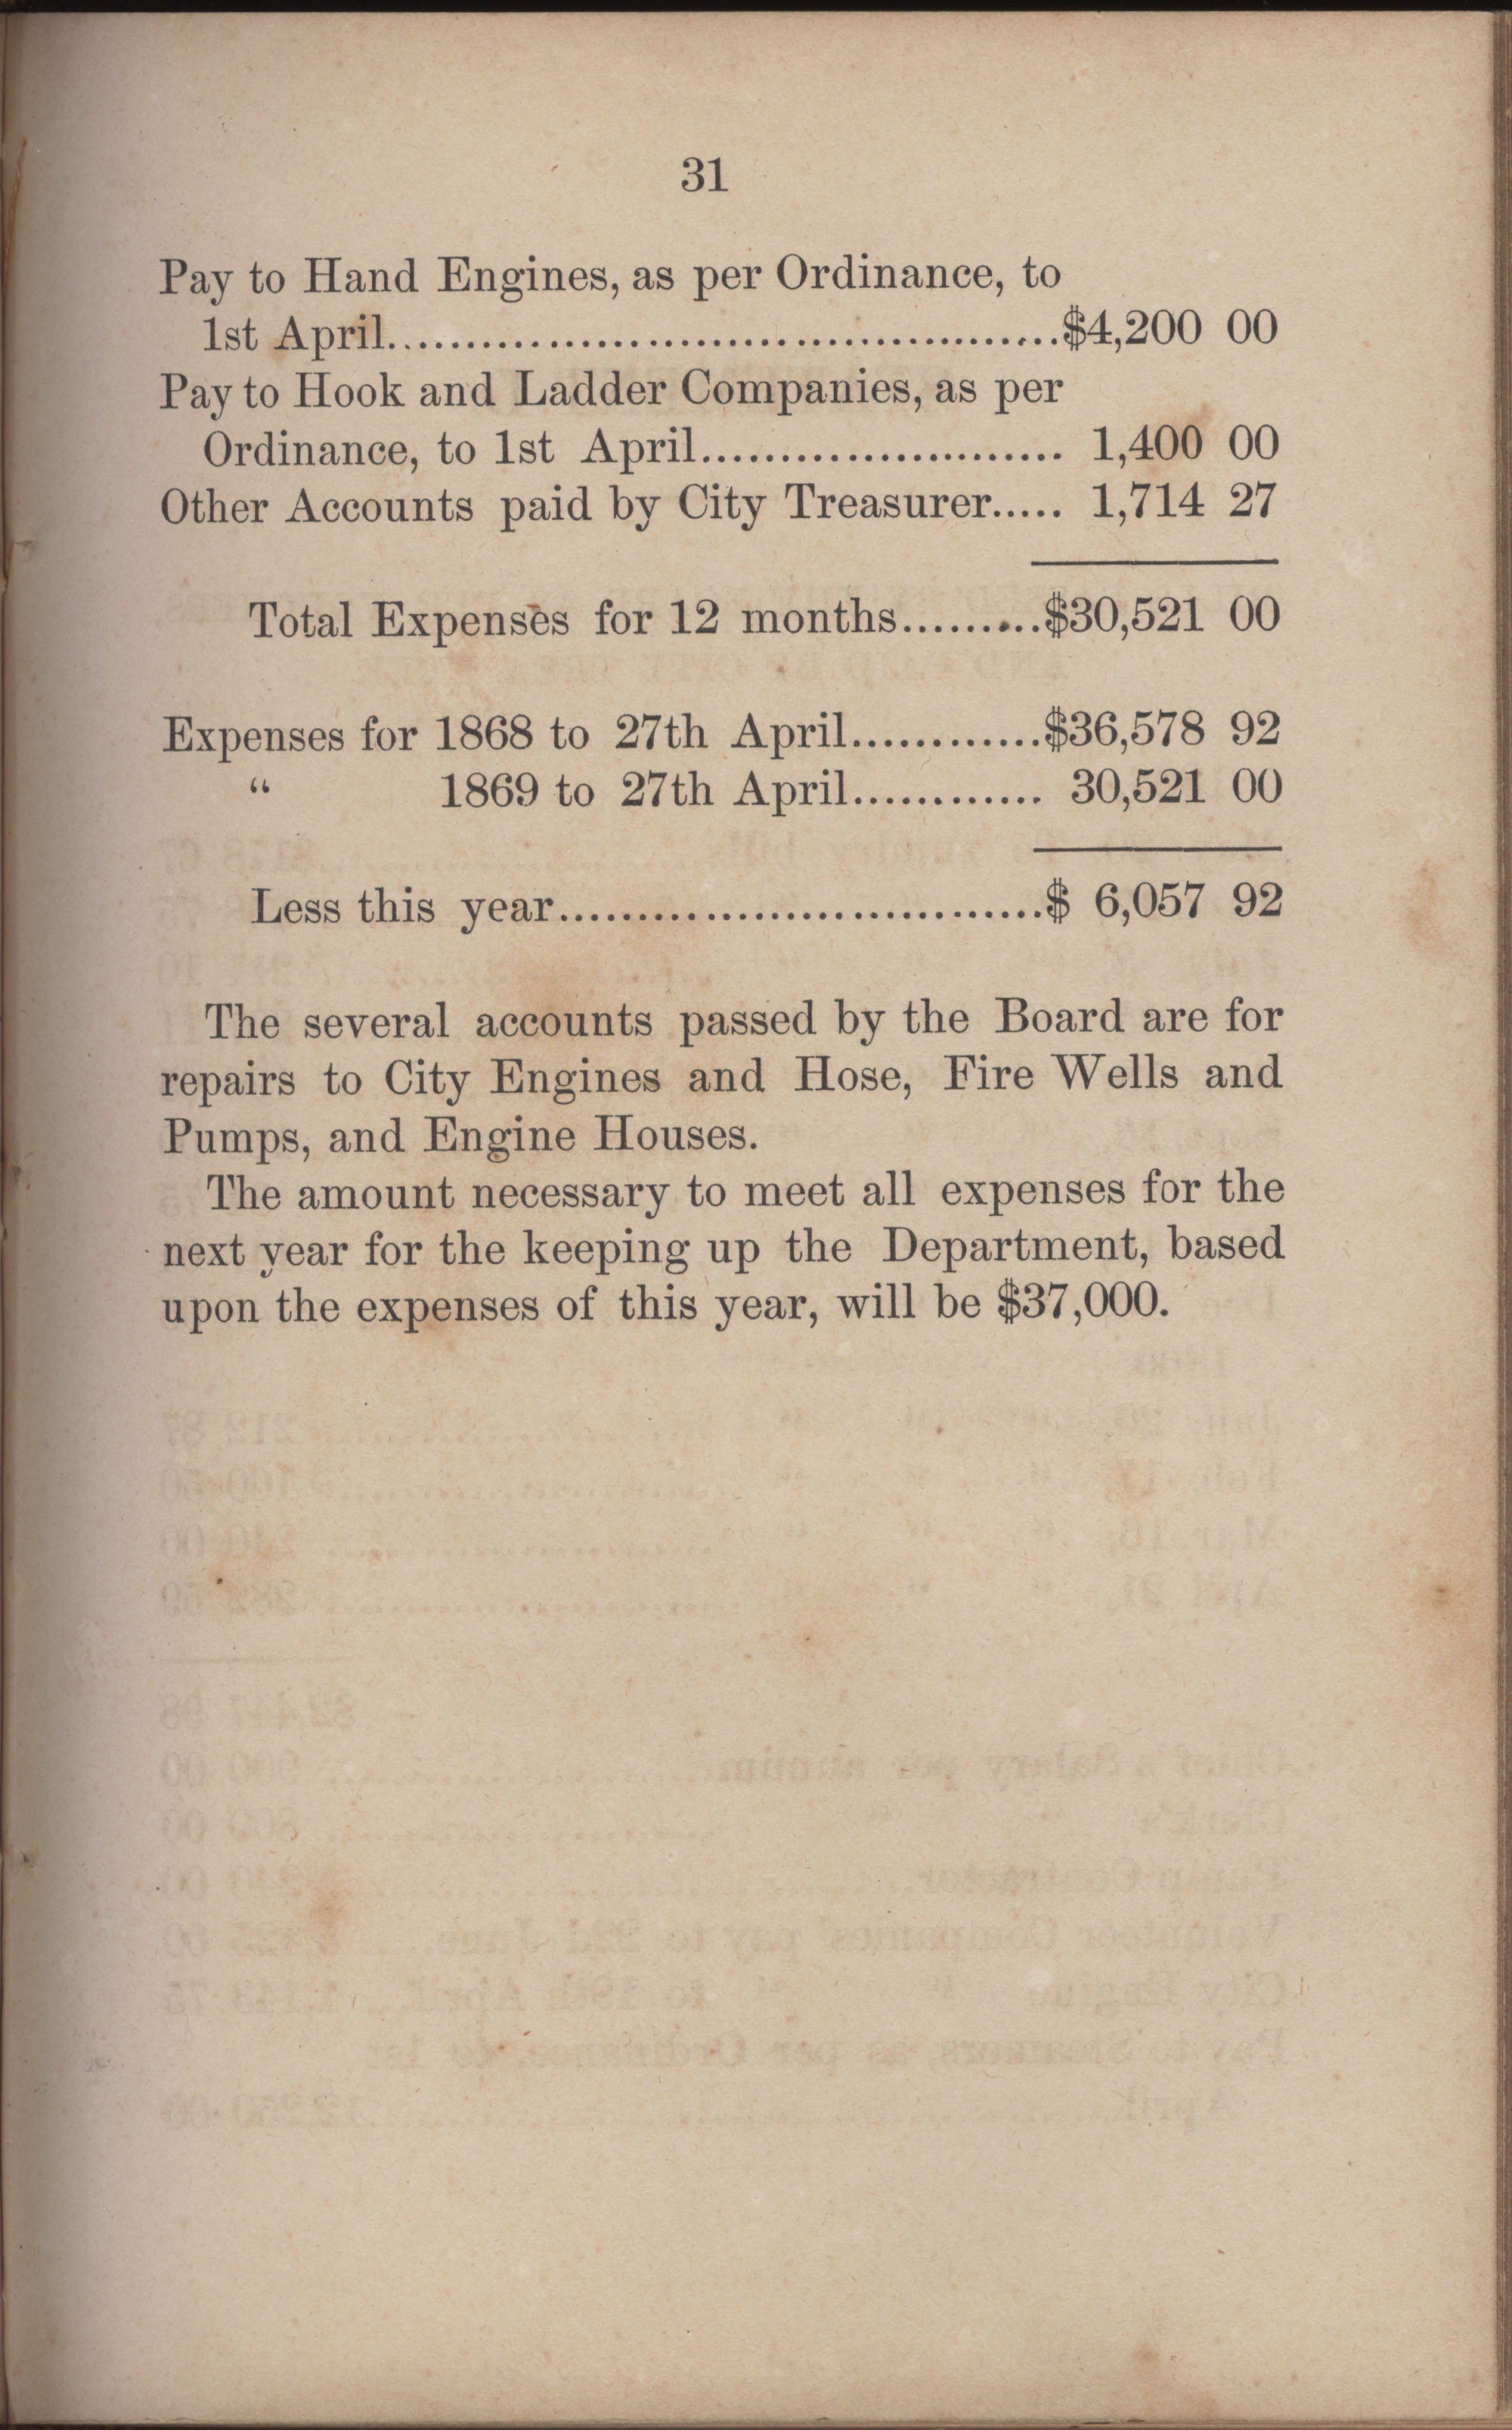 Annual Report of the Chief of the Fire Department of the City of Charleston, page 258